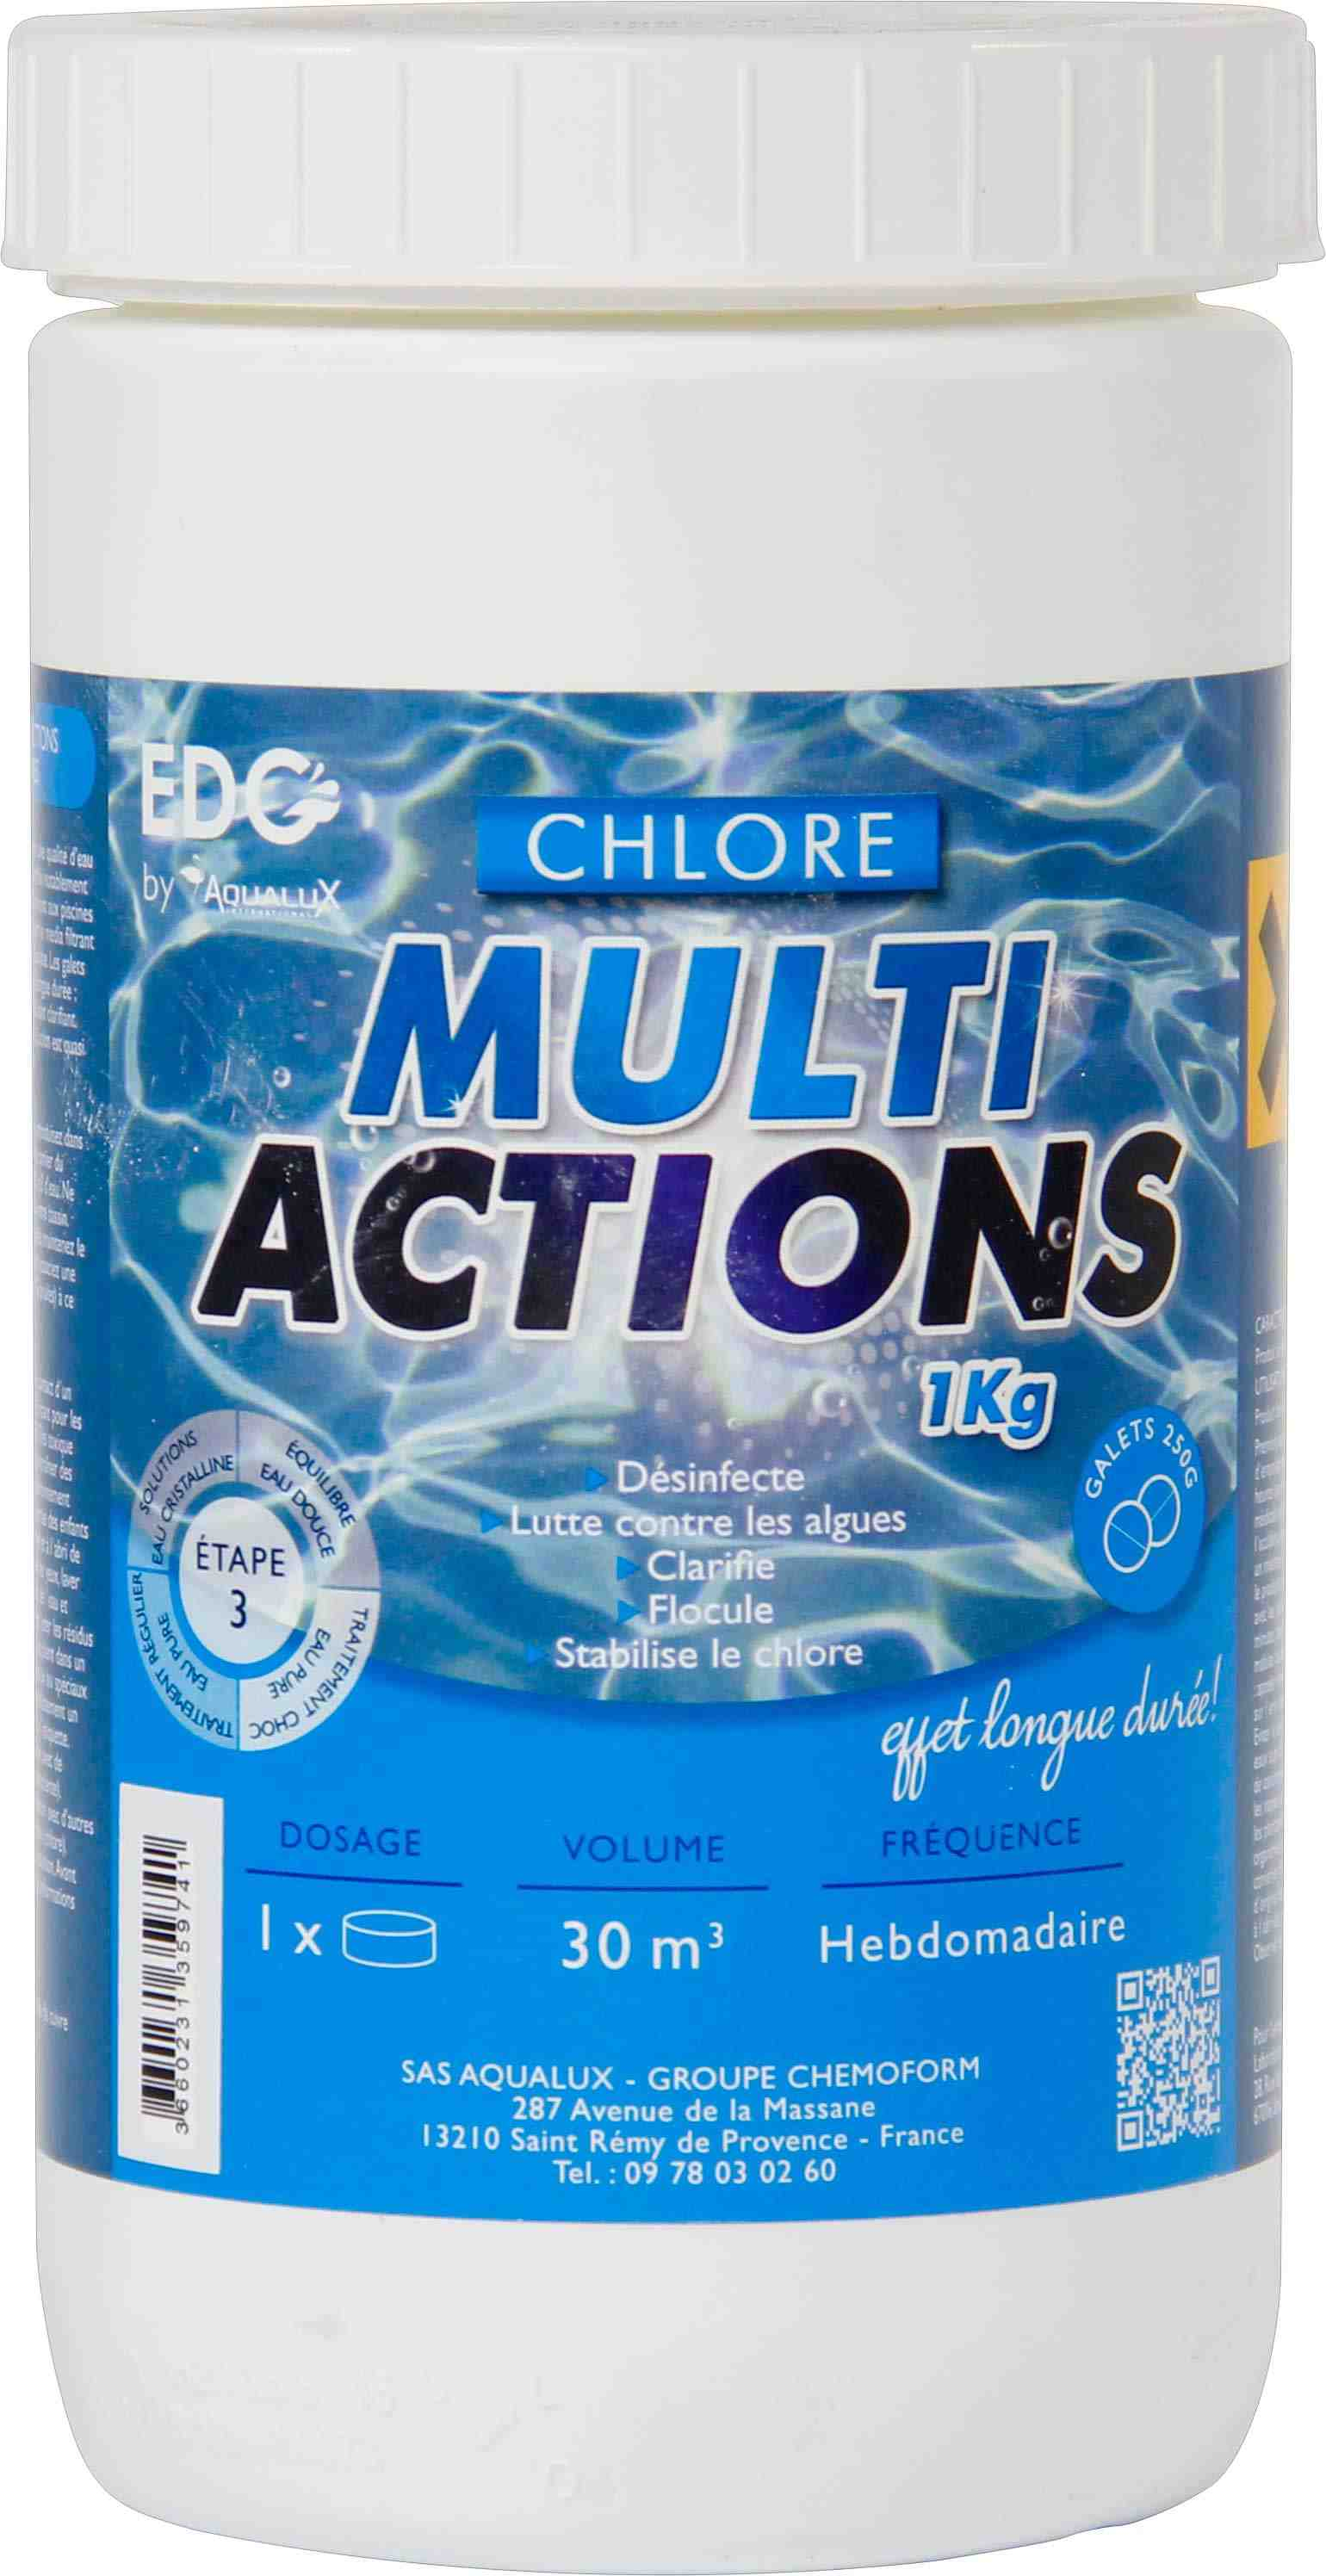 Chlore multiactions